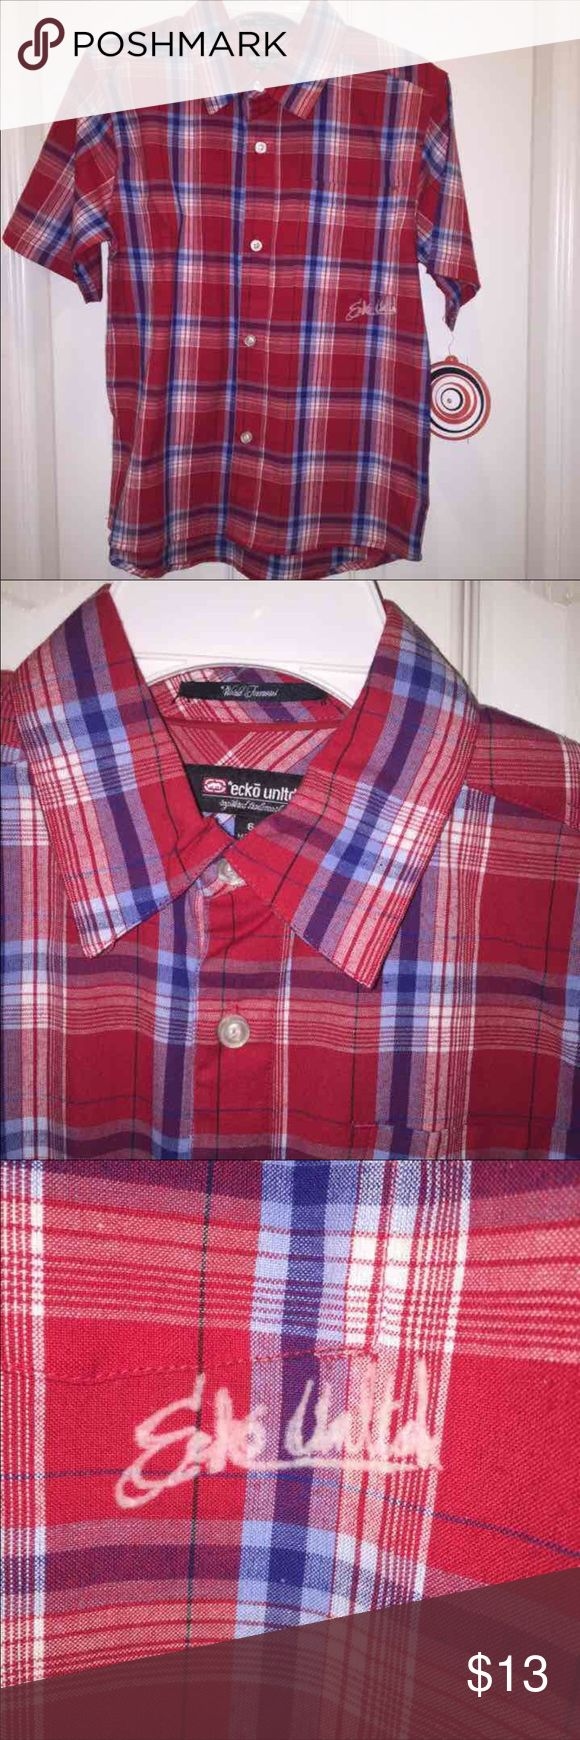 Ecko Unltd 6 Boys Red plaid shirt NWT Ecko Unlimited  boys size 6  red plaid shirt sleeved shirt button down with collar.   New with tags.   Dillards POP label.   Retails $30.   New with tags.   Smoke free home.   This closet does NOT trade Ecko Unlimited Shirts & Tops Button Down Shirts